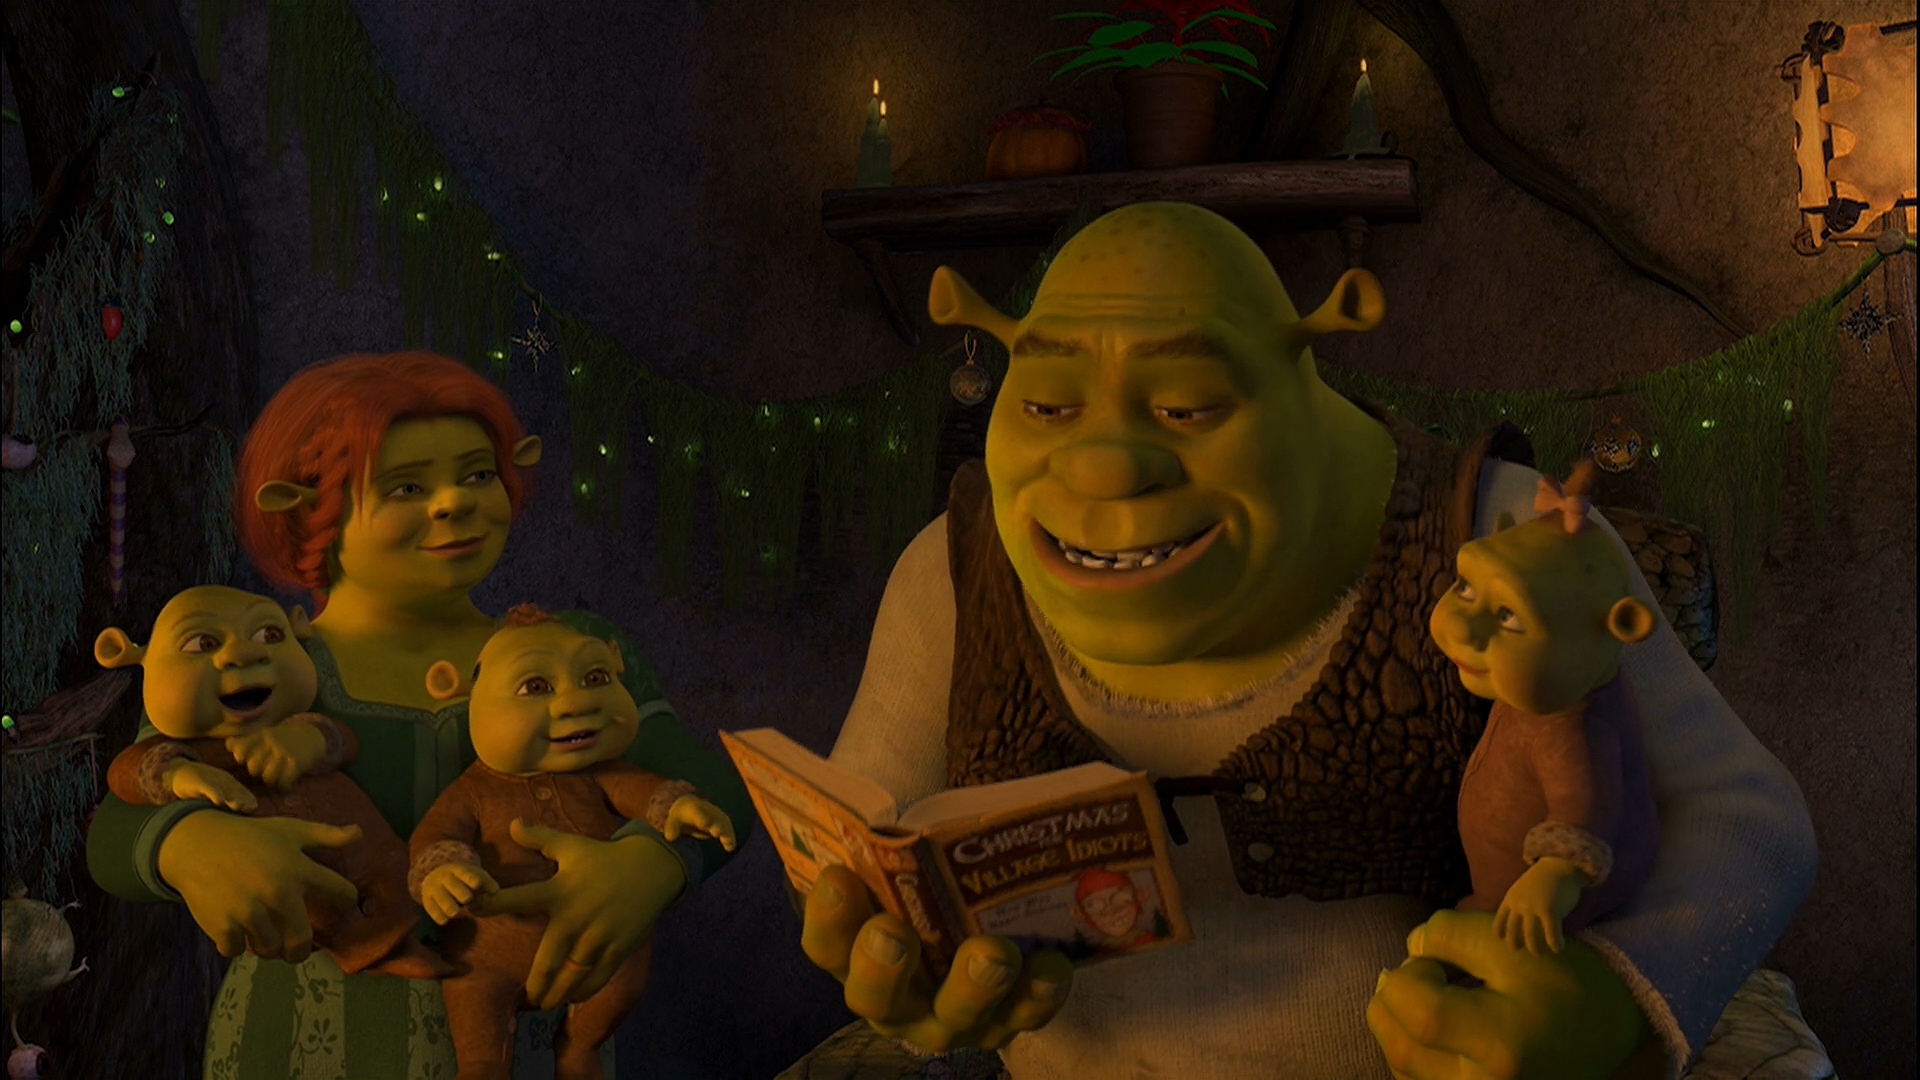 Best Online Storage for Photos In a Few Thousand Pictures of shrek 2 characters